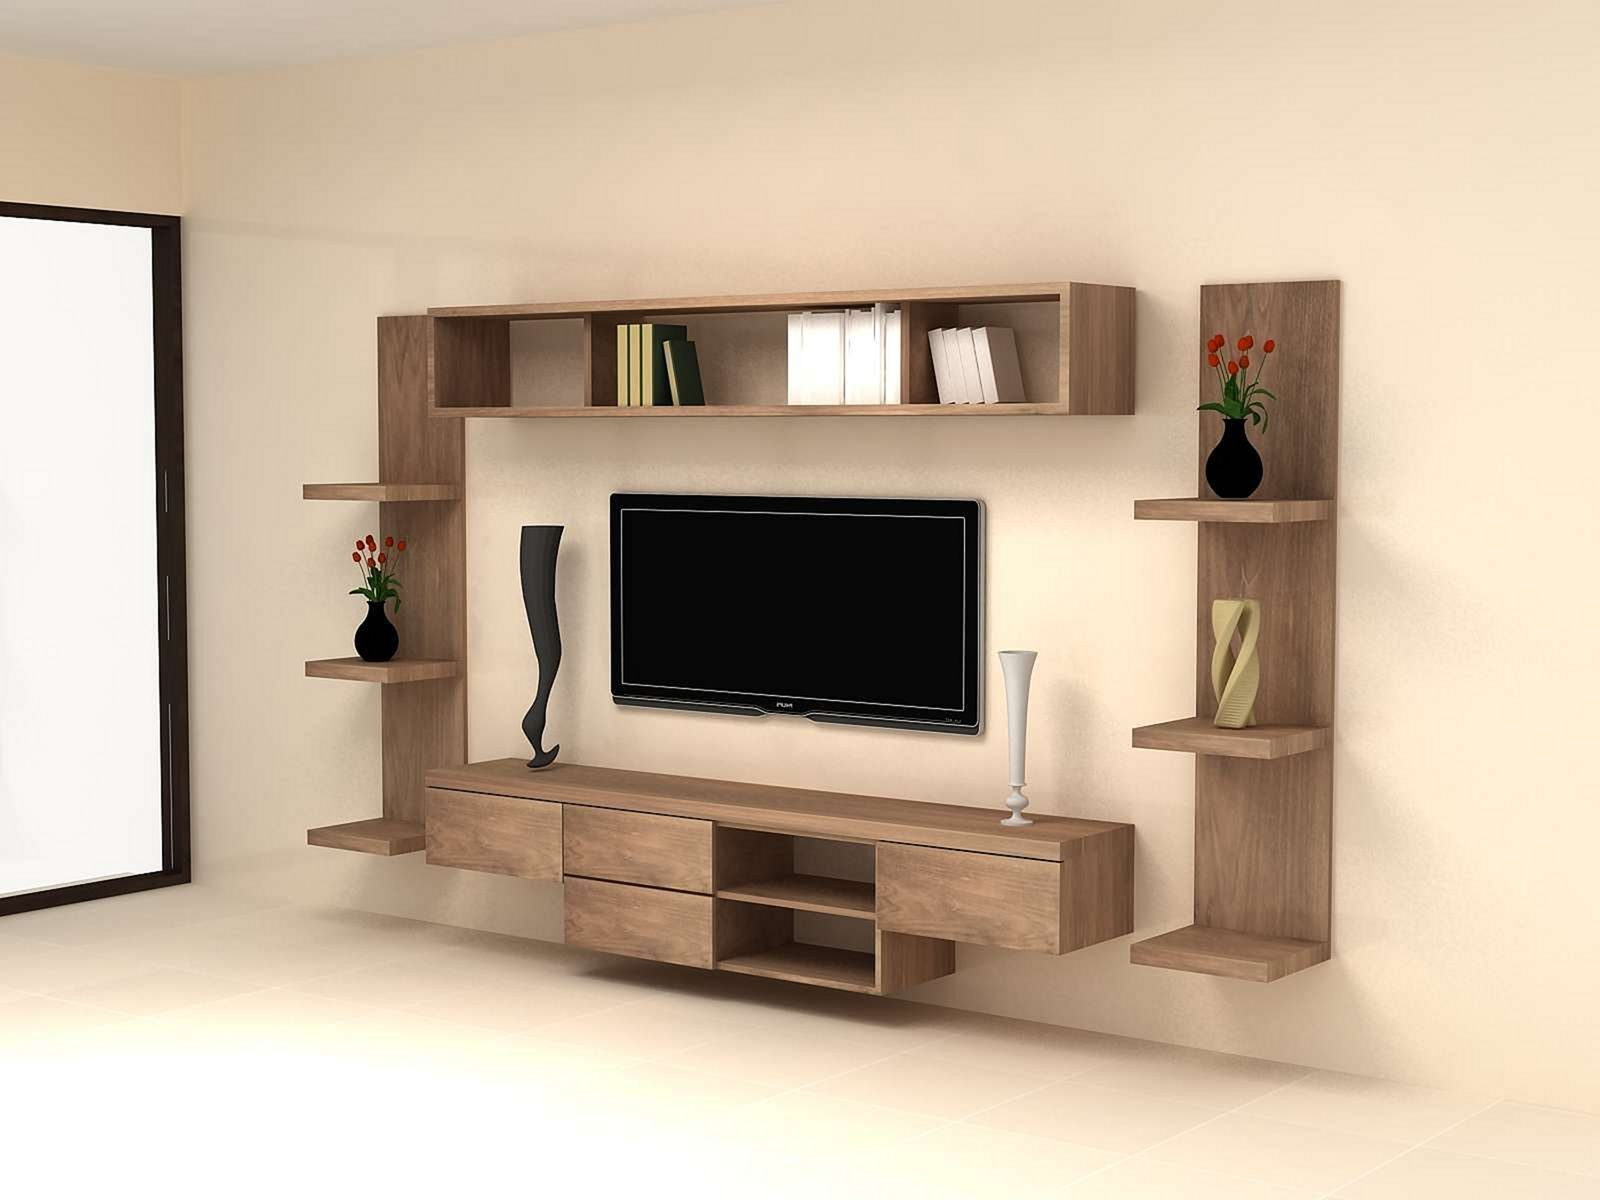 49 Affordable Wooden Tv Stands Design Ideas With Storage Modern